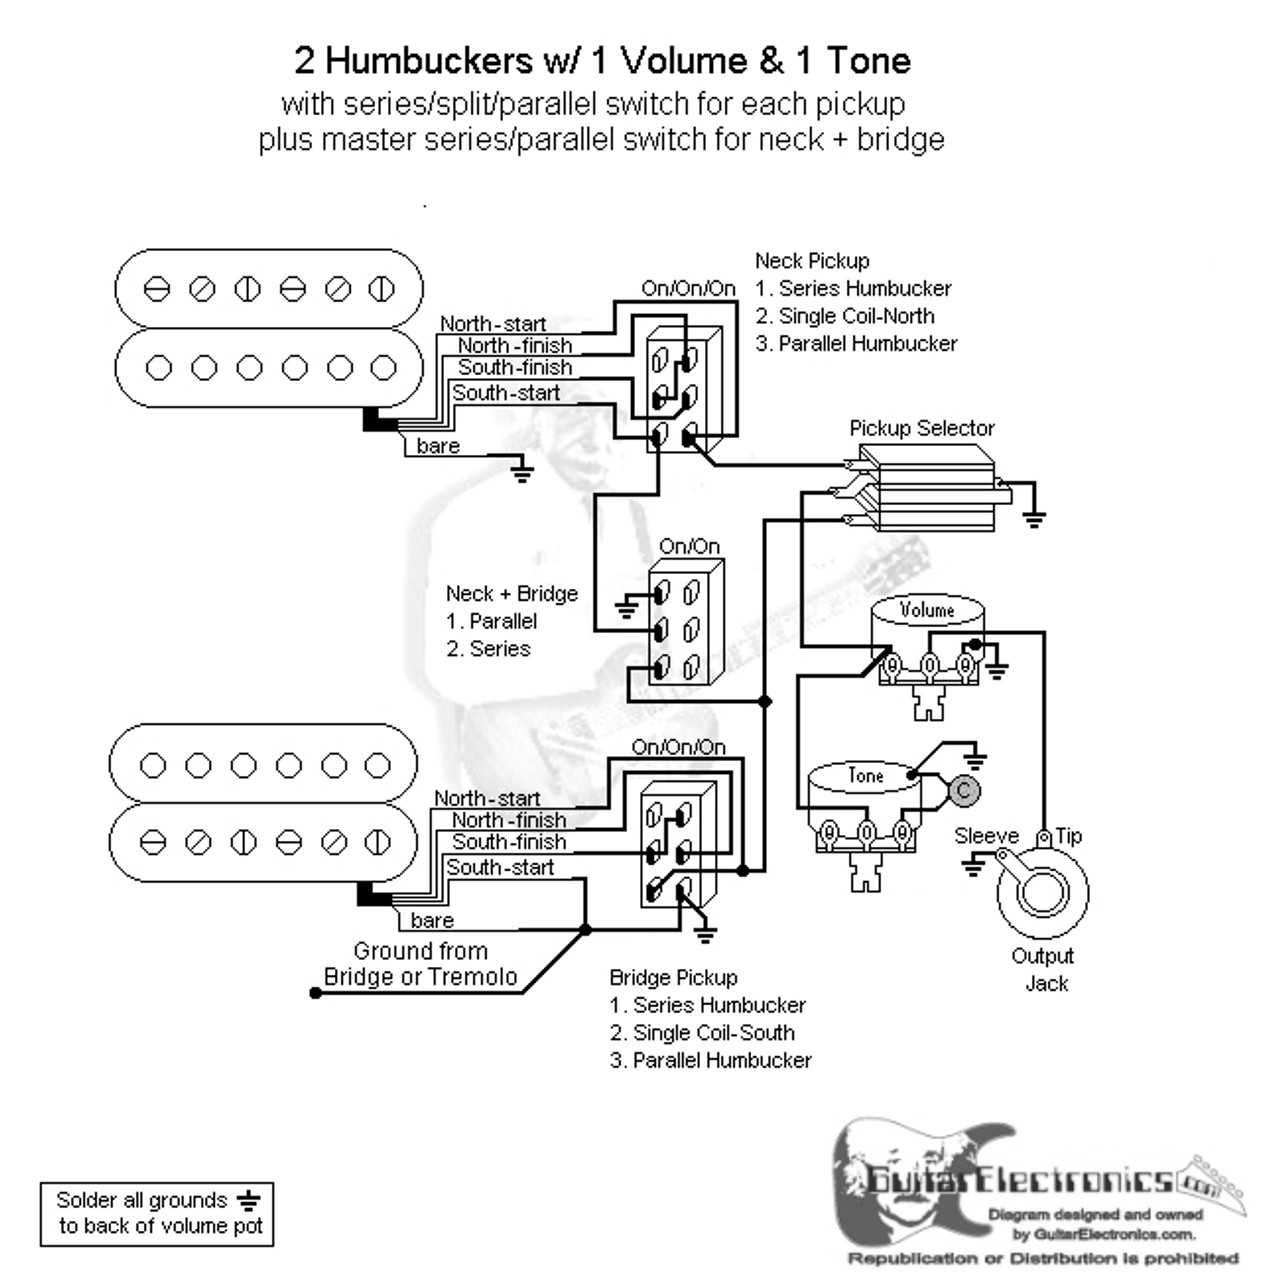 2 hbs 3 way toggle 1 vol 1 tone series split parallel u0026 master ethernet switch wiring diagram 2 hbs 3 way toggle 1 vol 1 tone series split parallel  [ 1280 x 1280 Pixel ]